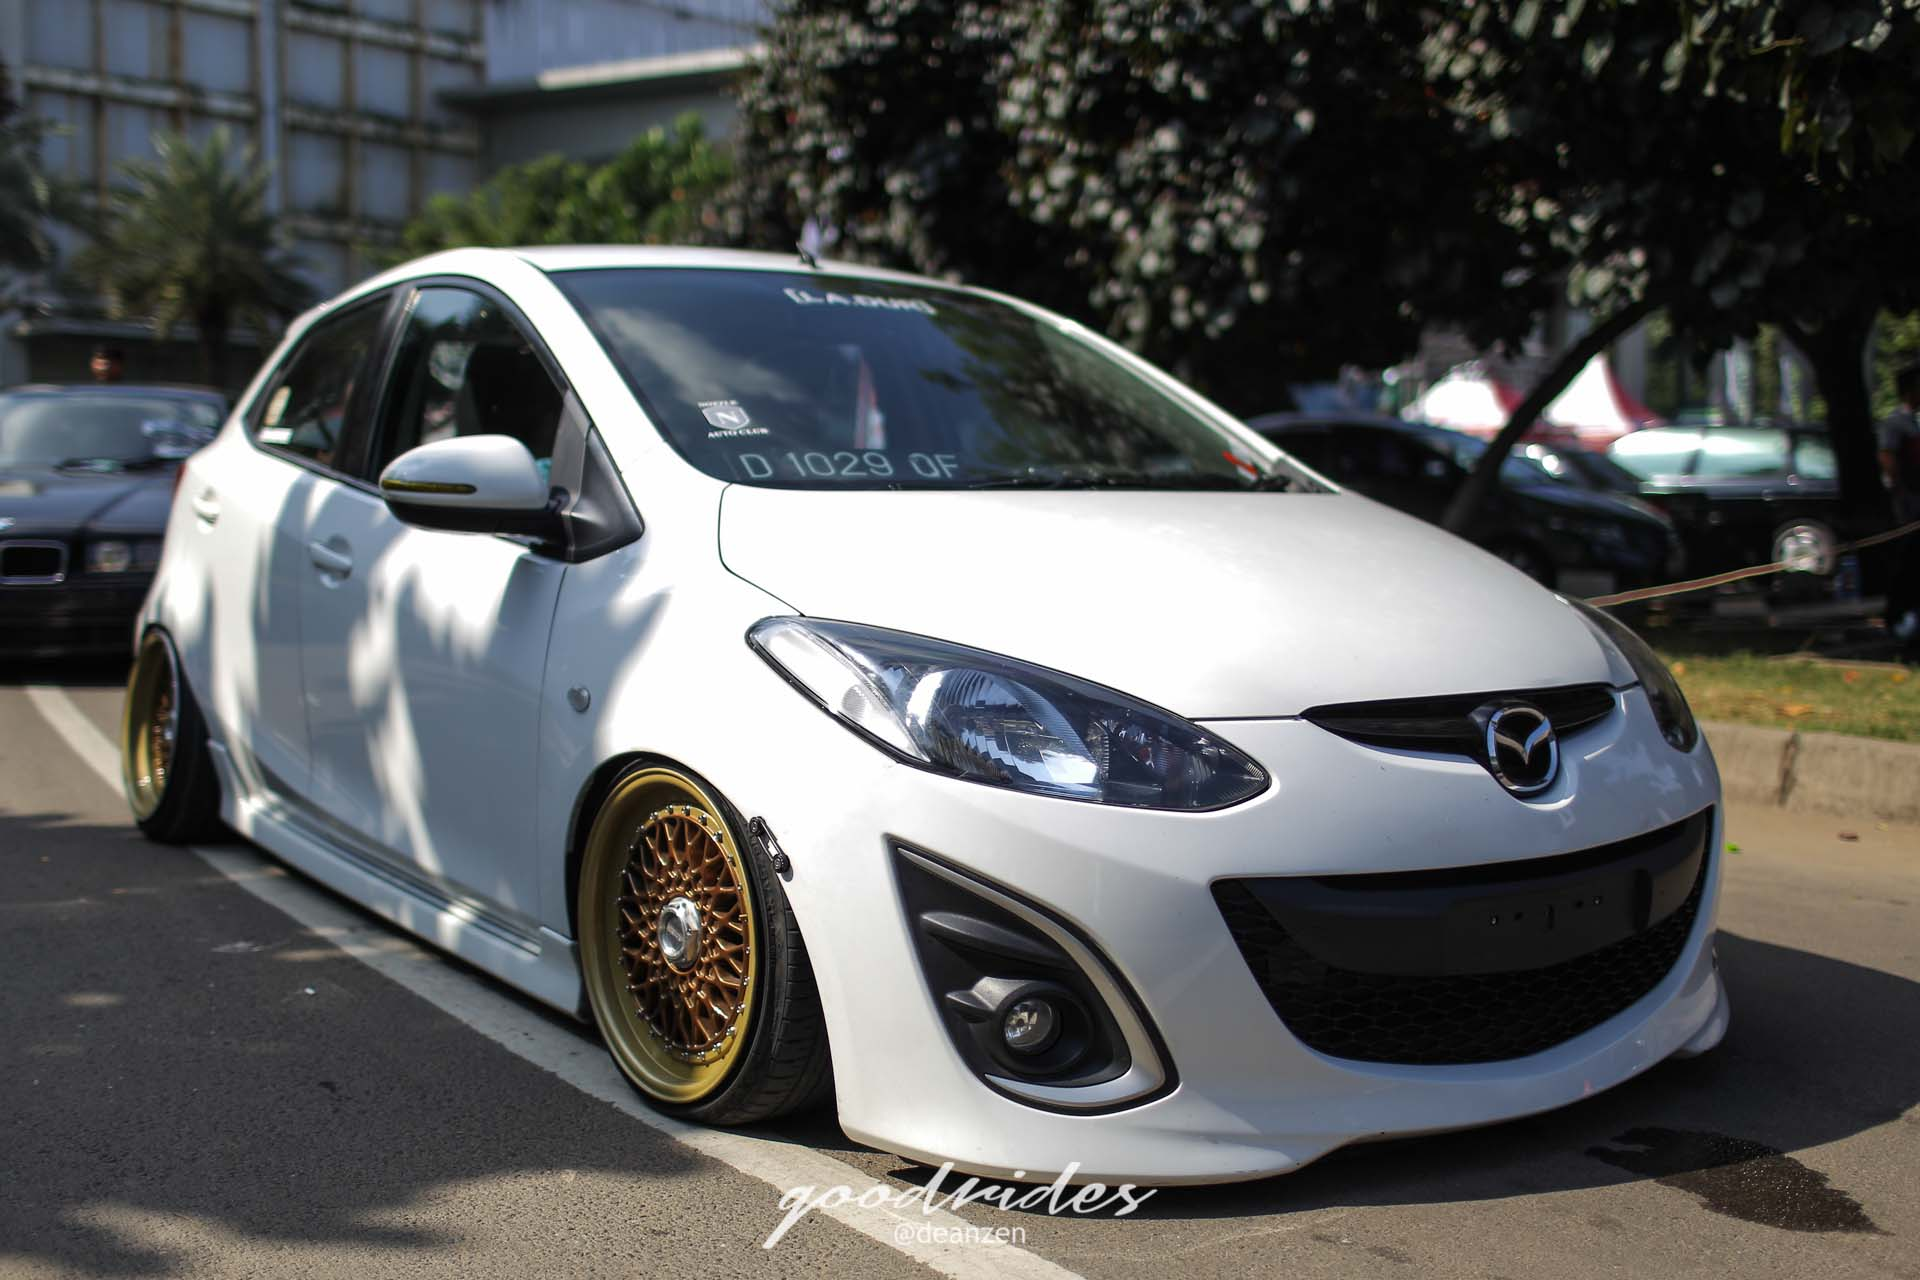 Mazda 2Modified CarsCar AccessoriesCustom CarsDream Cars CompactJeepsBikingTrucks